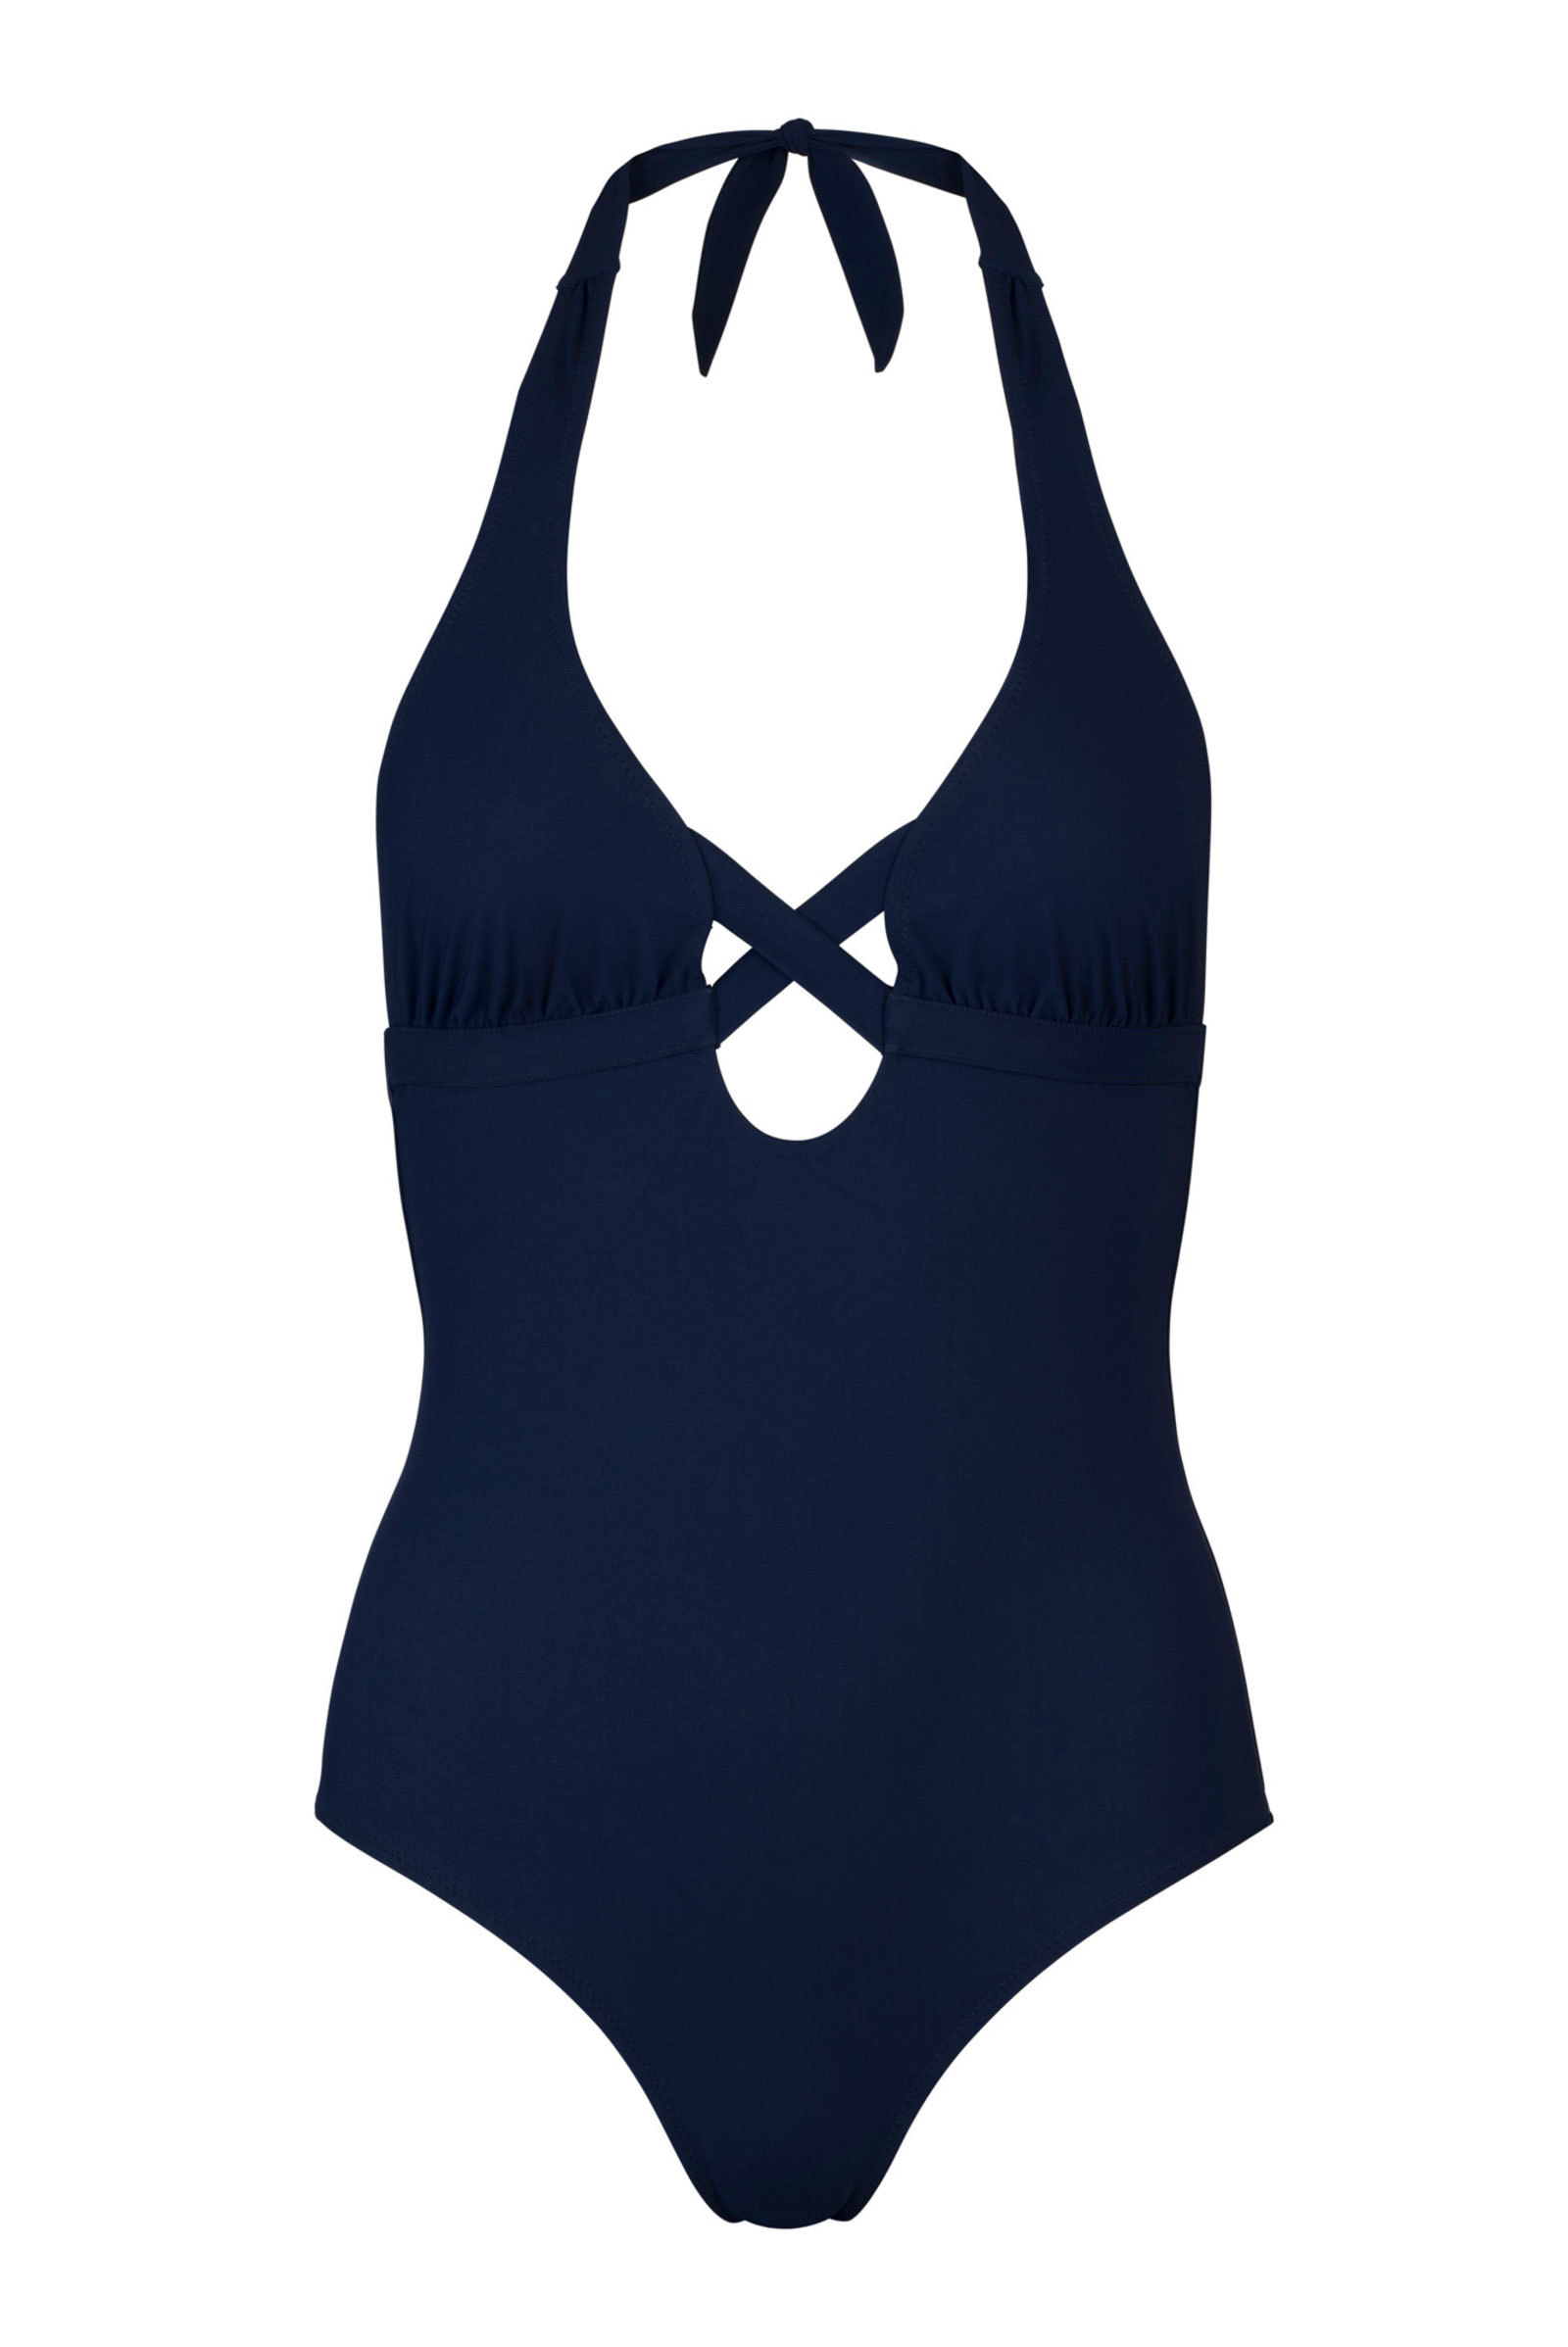 VALIMAR CANNES CROSS ONE PIECE NAVY